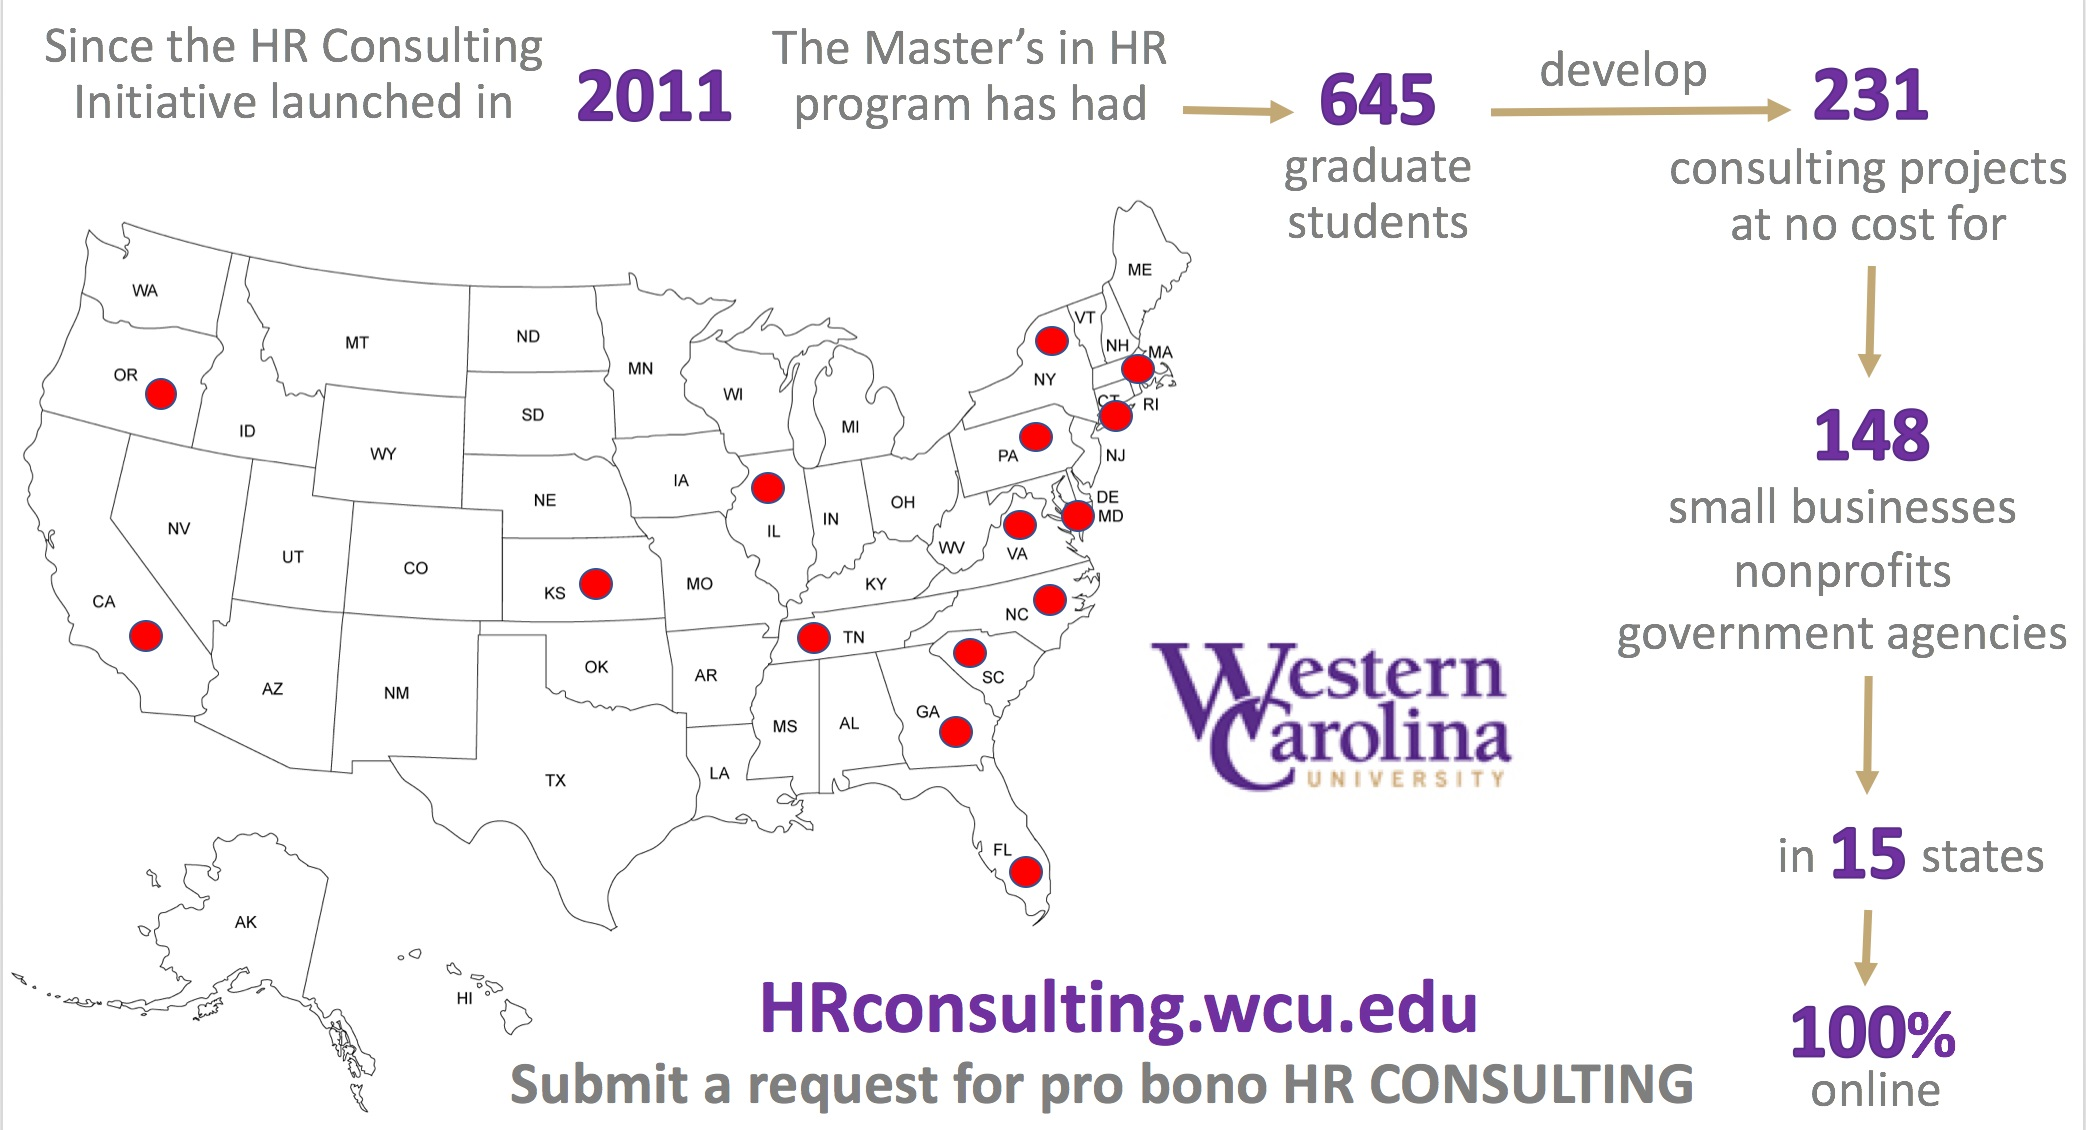 HR Consulting Infographic 2018 - Visually displaying the number of graduate students, pro bono clients, and states represented.